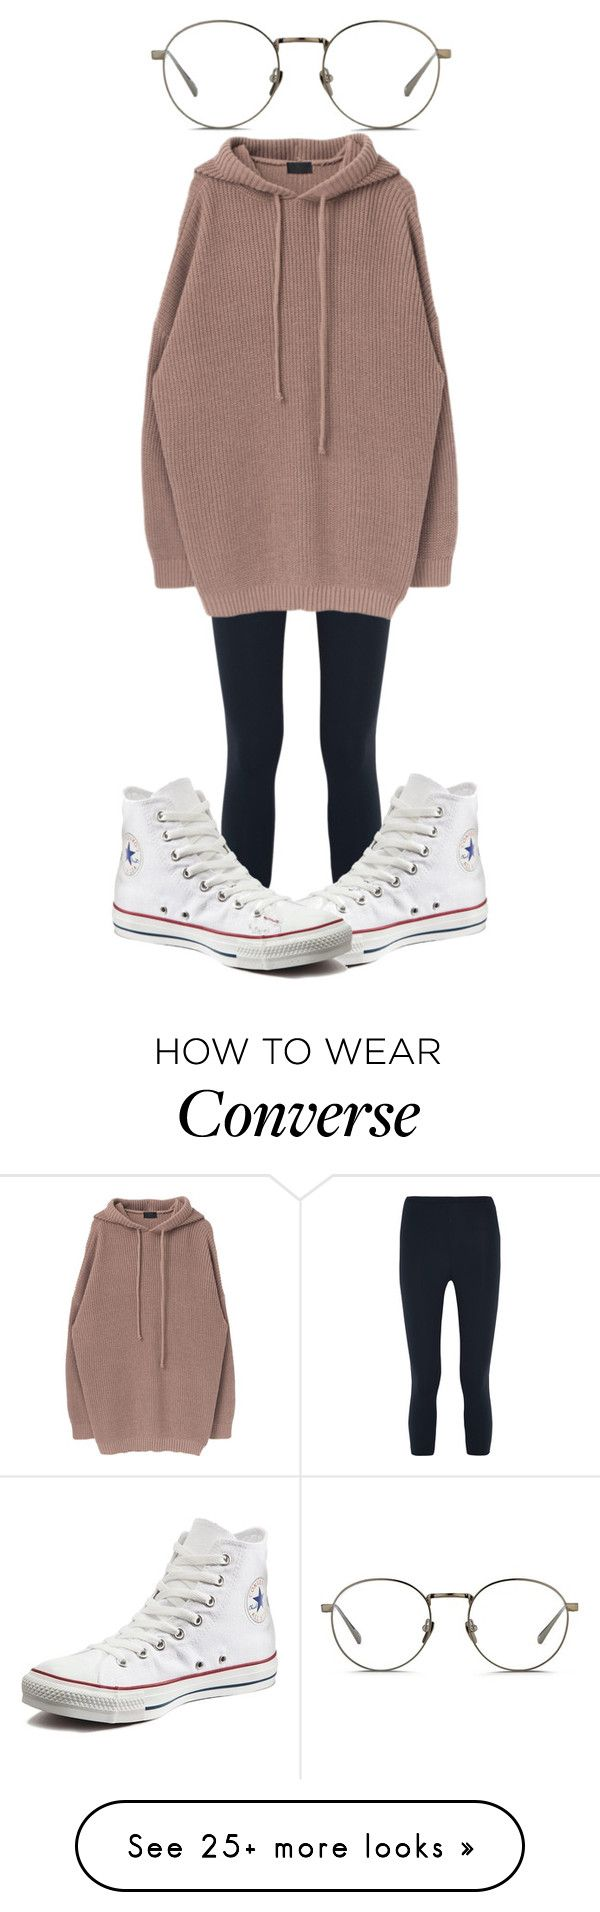 """#277"" by jel1ica on Polyvore featuring Live the Process, Converse and Linda Farrow"